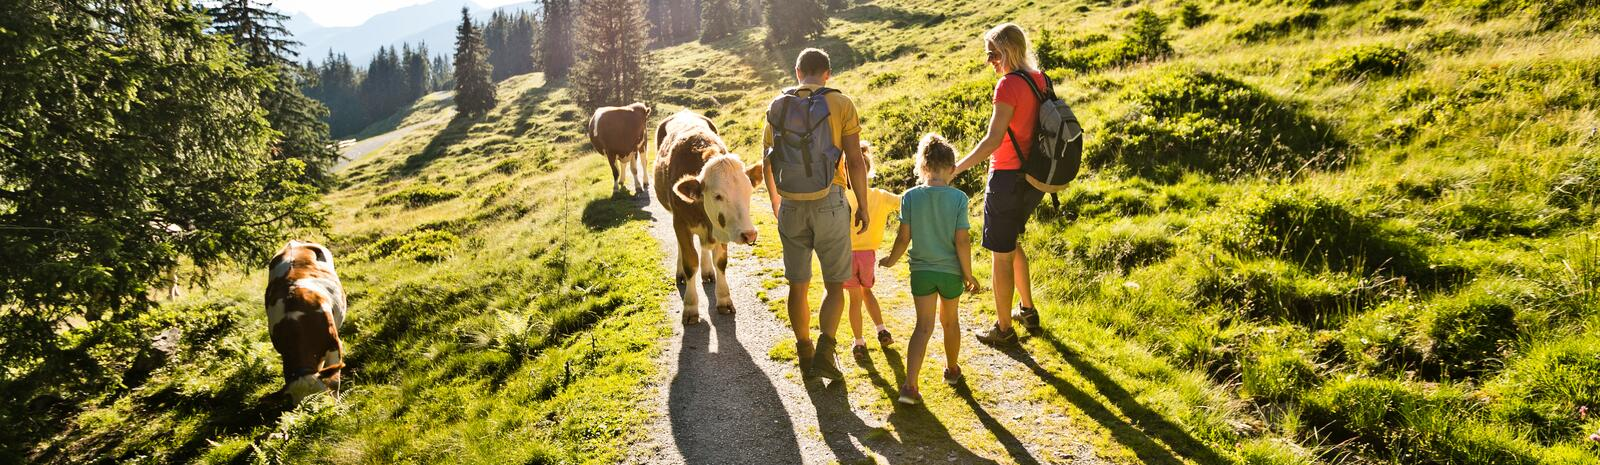 family on the mountain | © saalbach.com, Mirja Geh